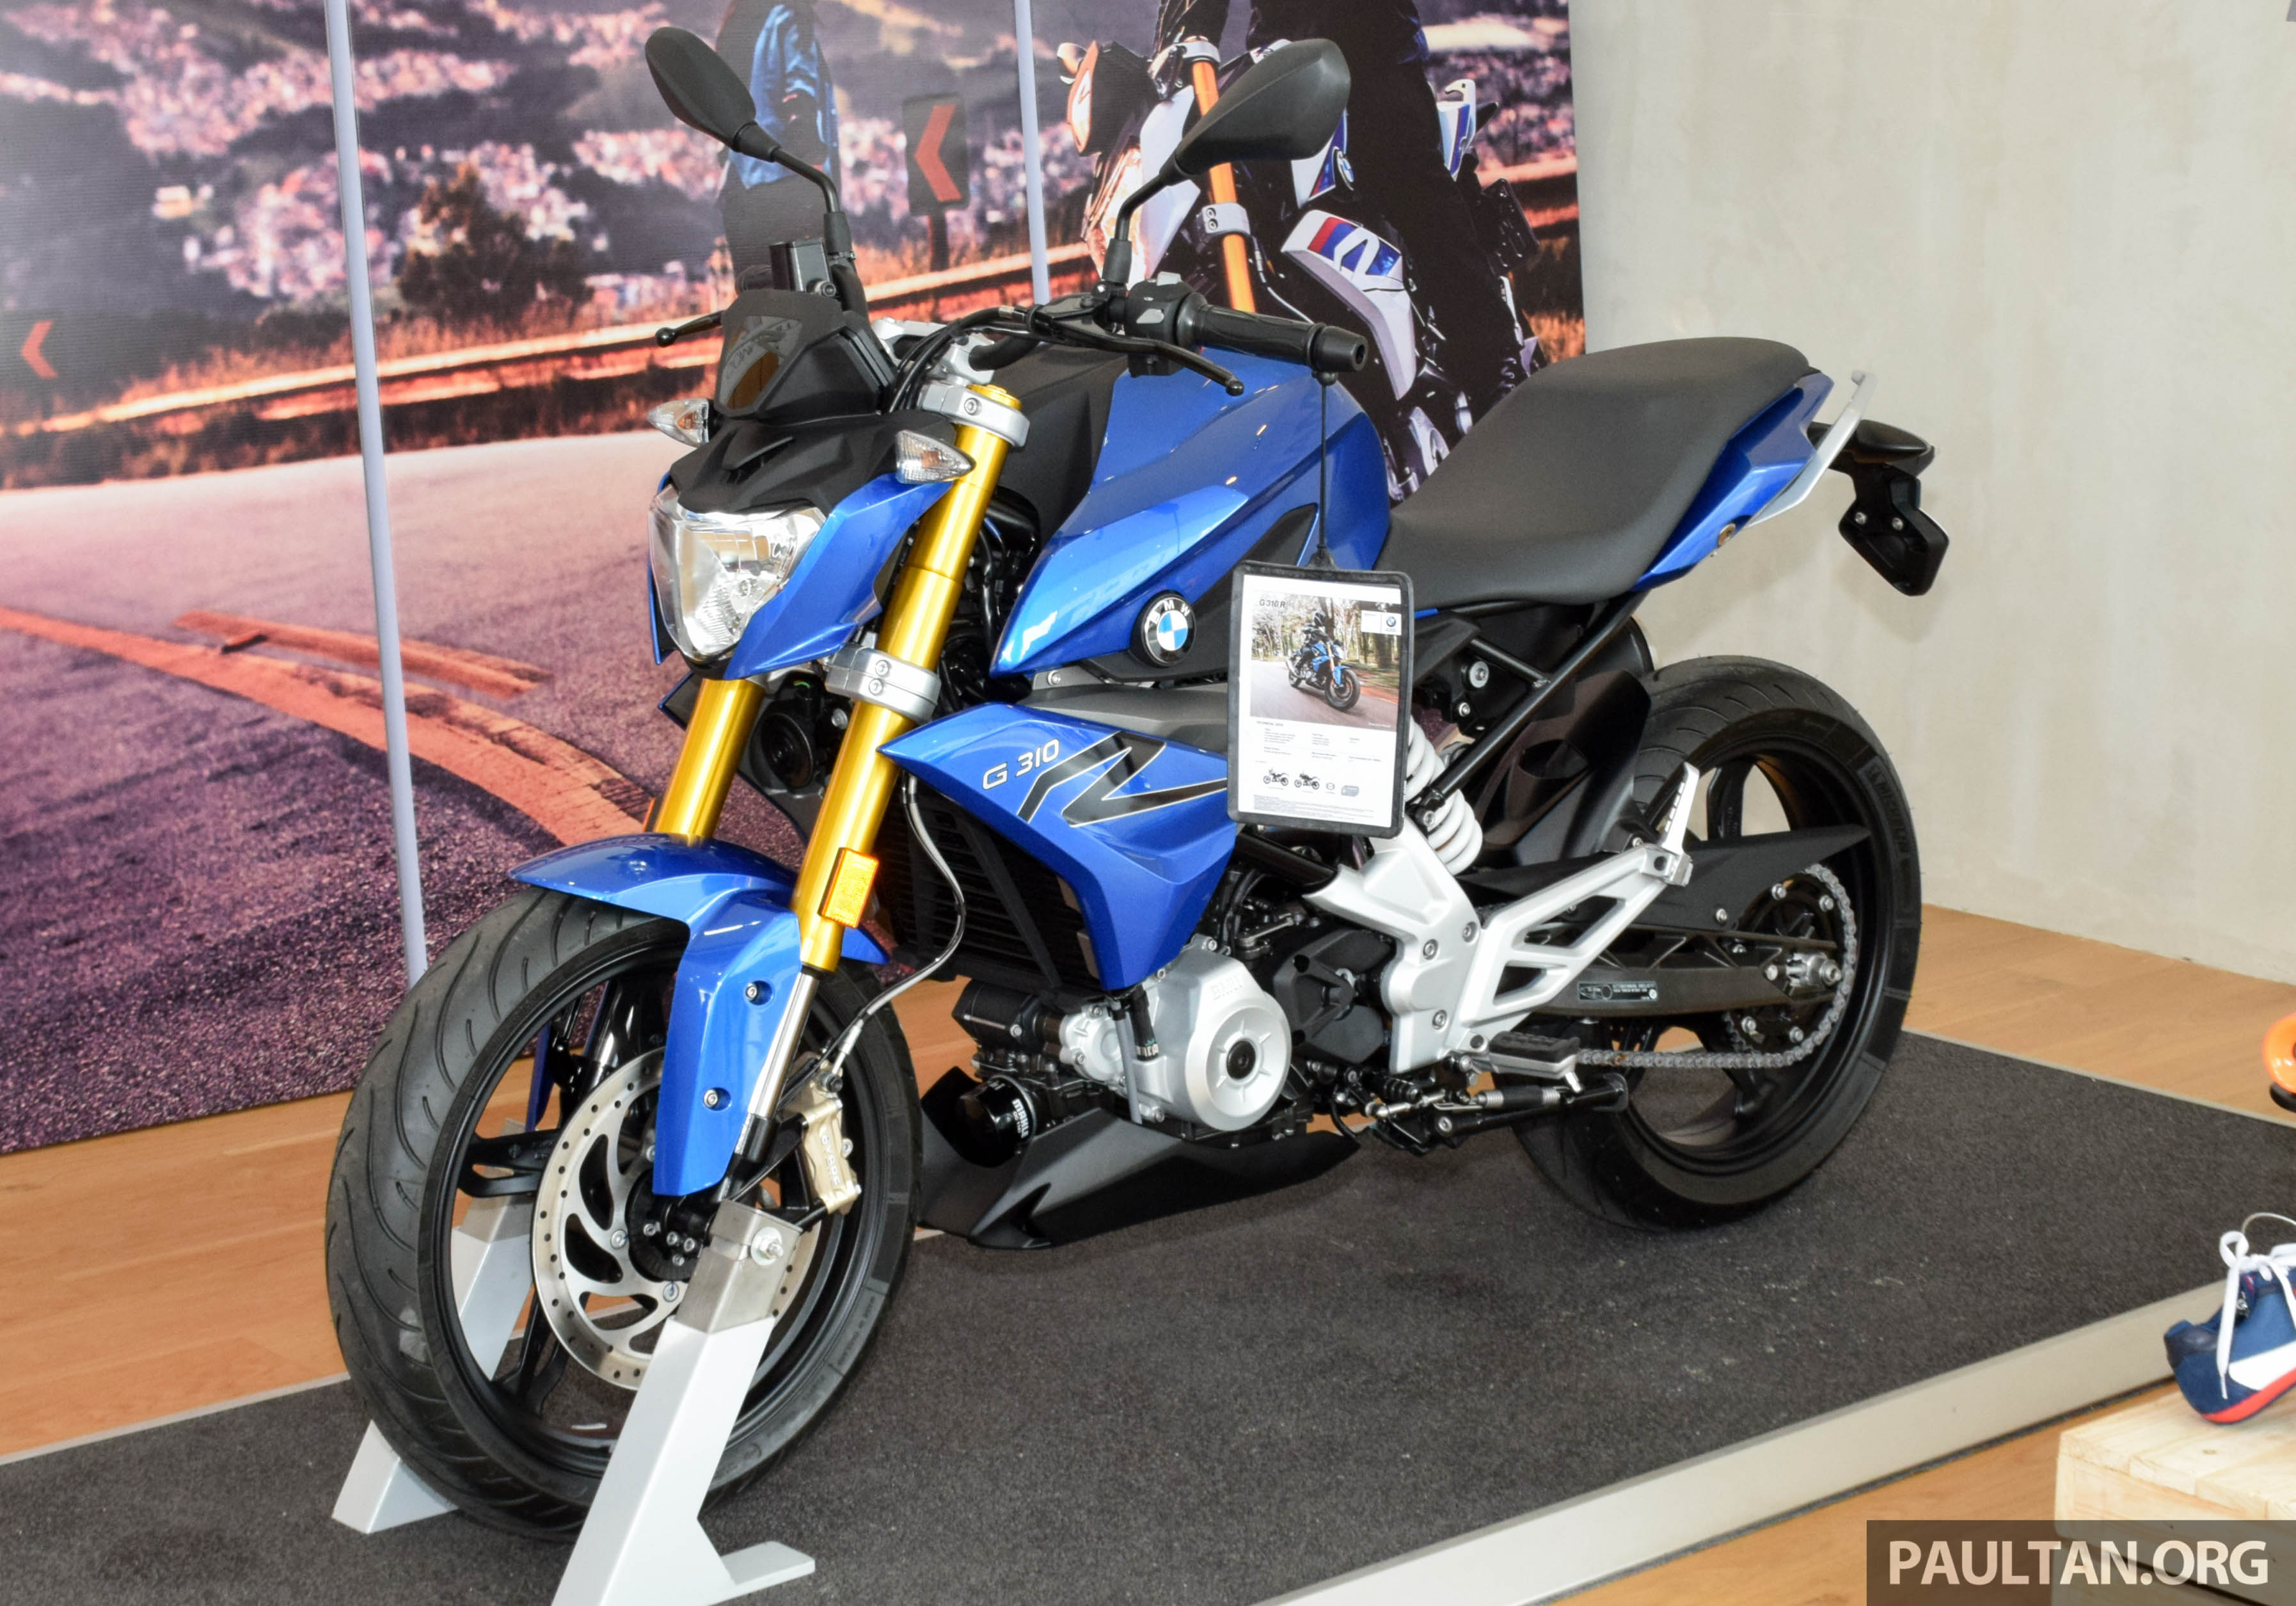 2016 Bmw Motorrad G310r Previewed In Malaysia